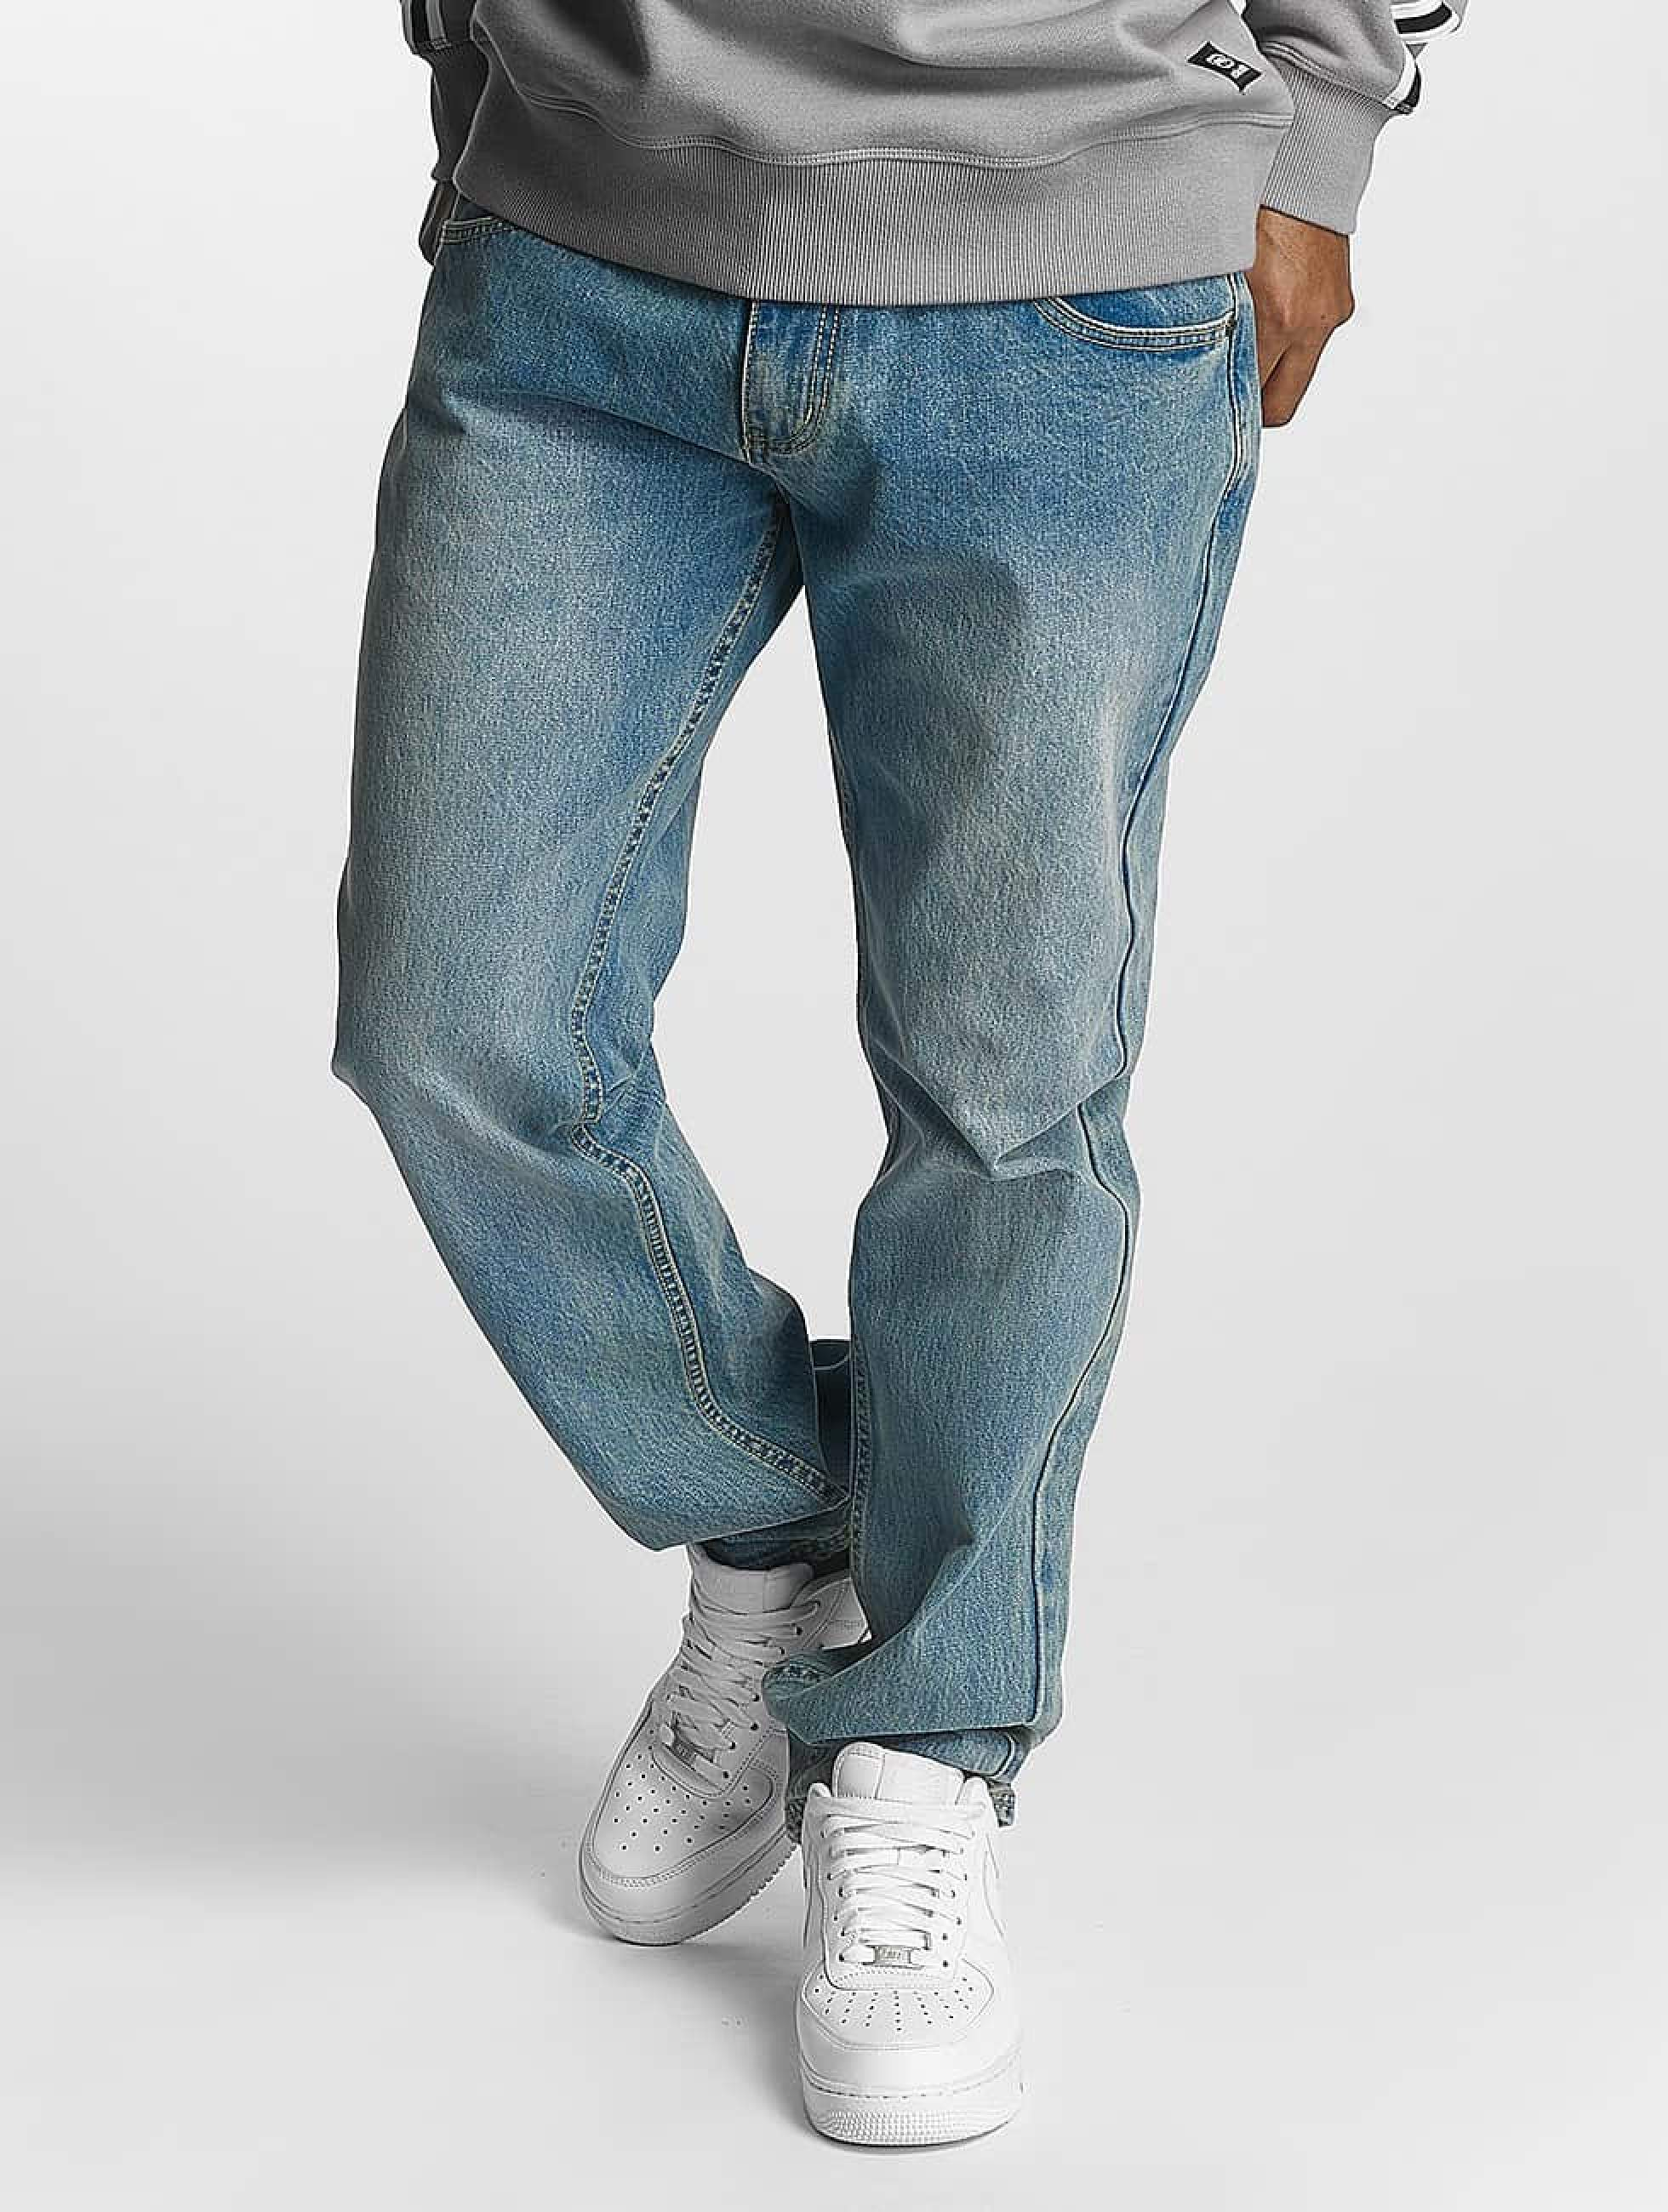 Ecko Unltd. / Straight Fit Jeans Camp's St Straight Fit in blue W 38 L 34